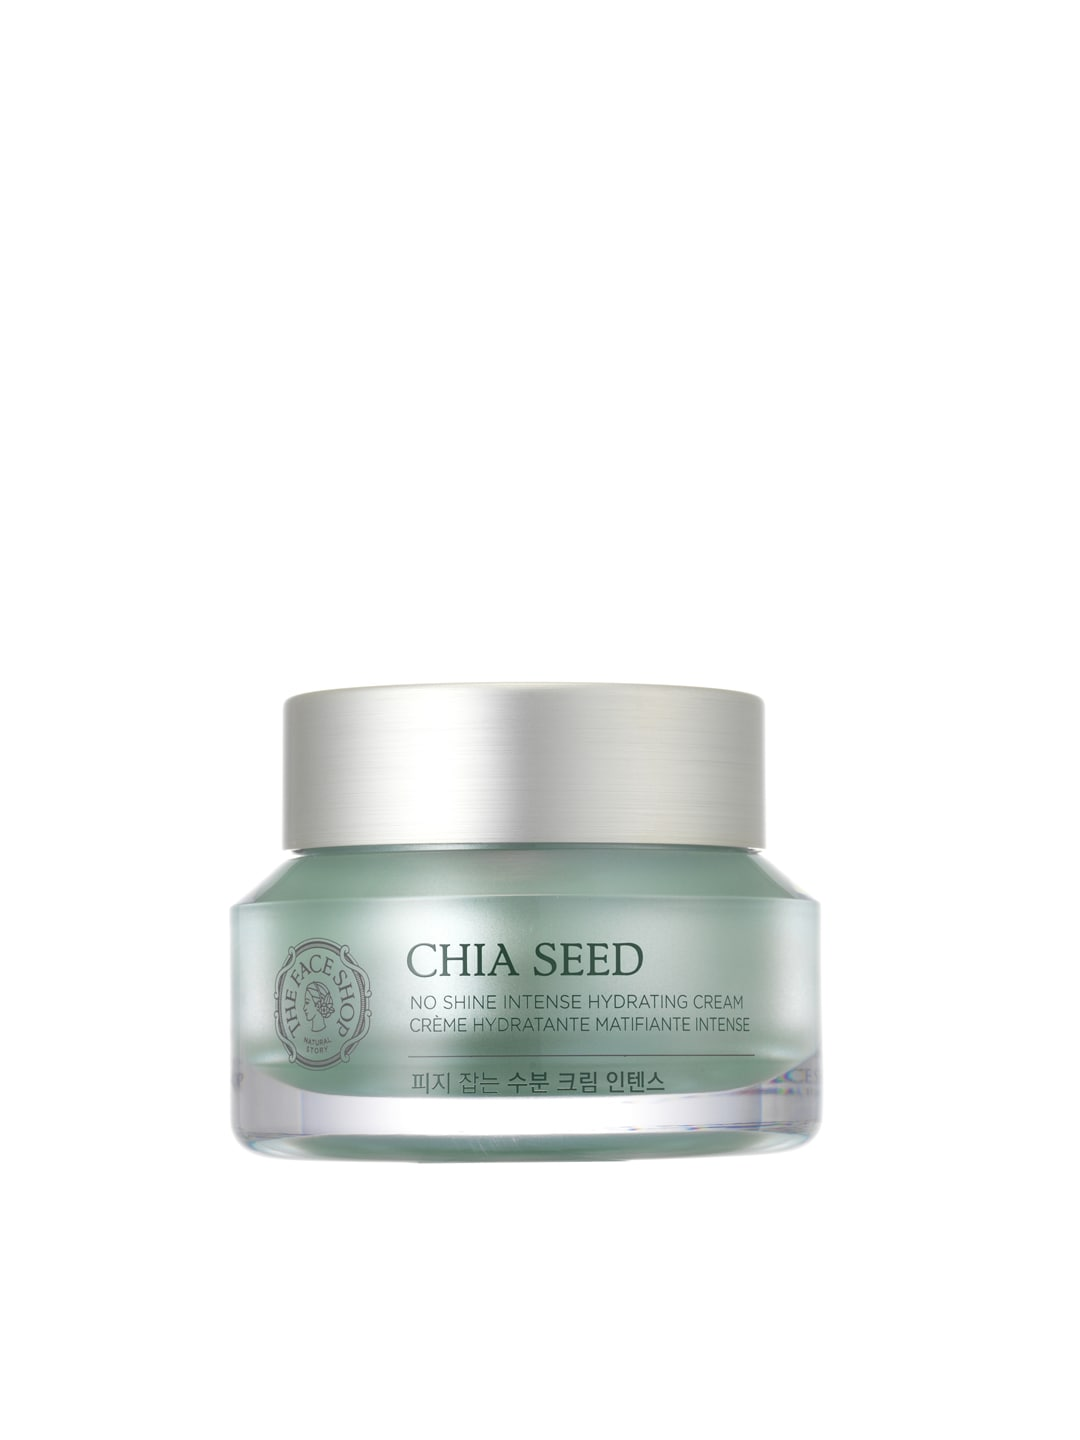 The Face Shop Women Chia Seed Hydrating Cream image